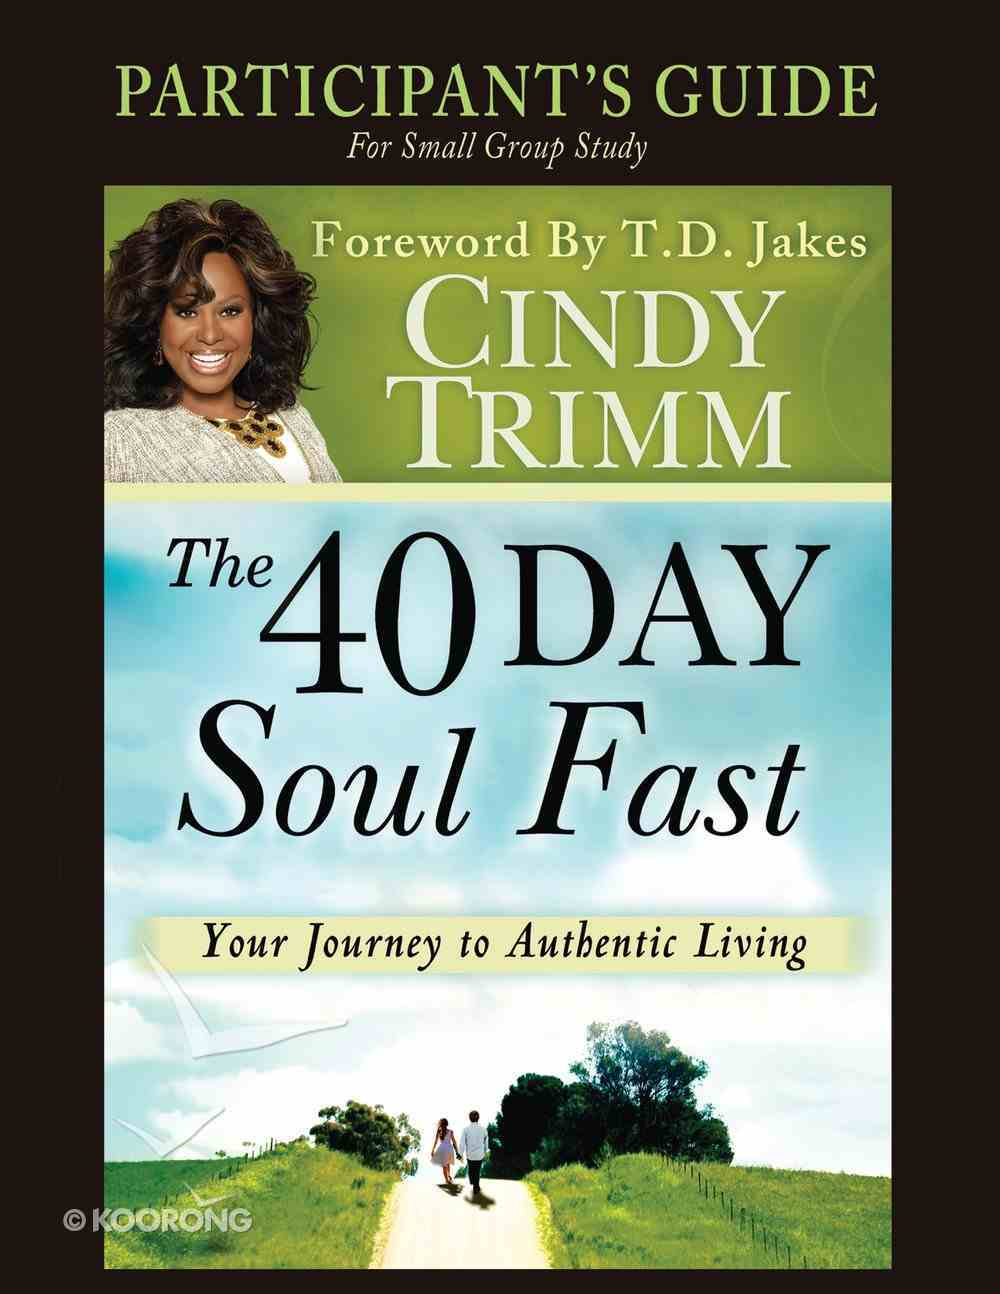 The 40 Day Soul Fast (Participant's Guide) eBook